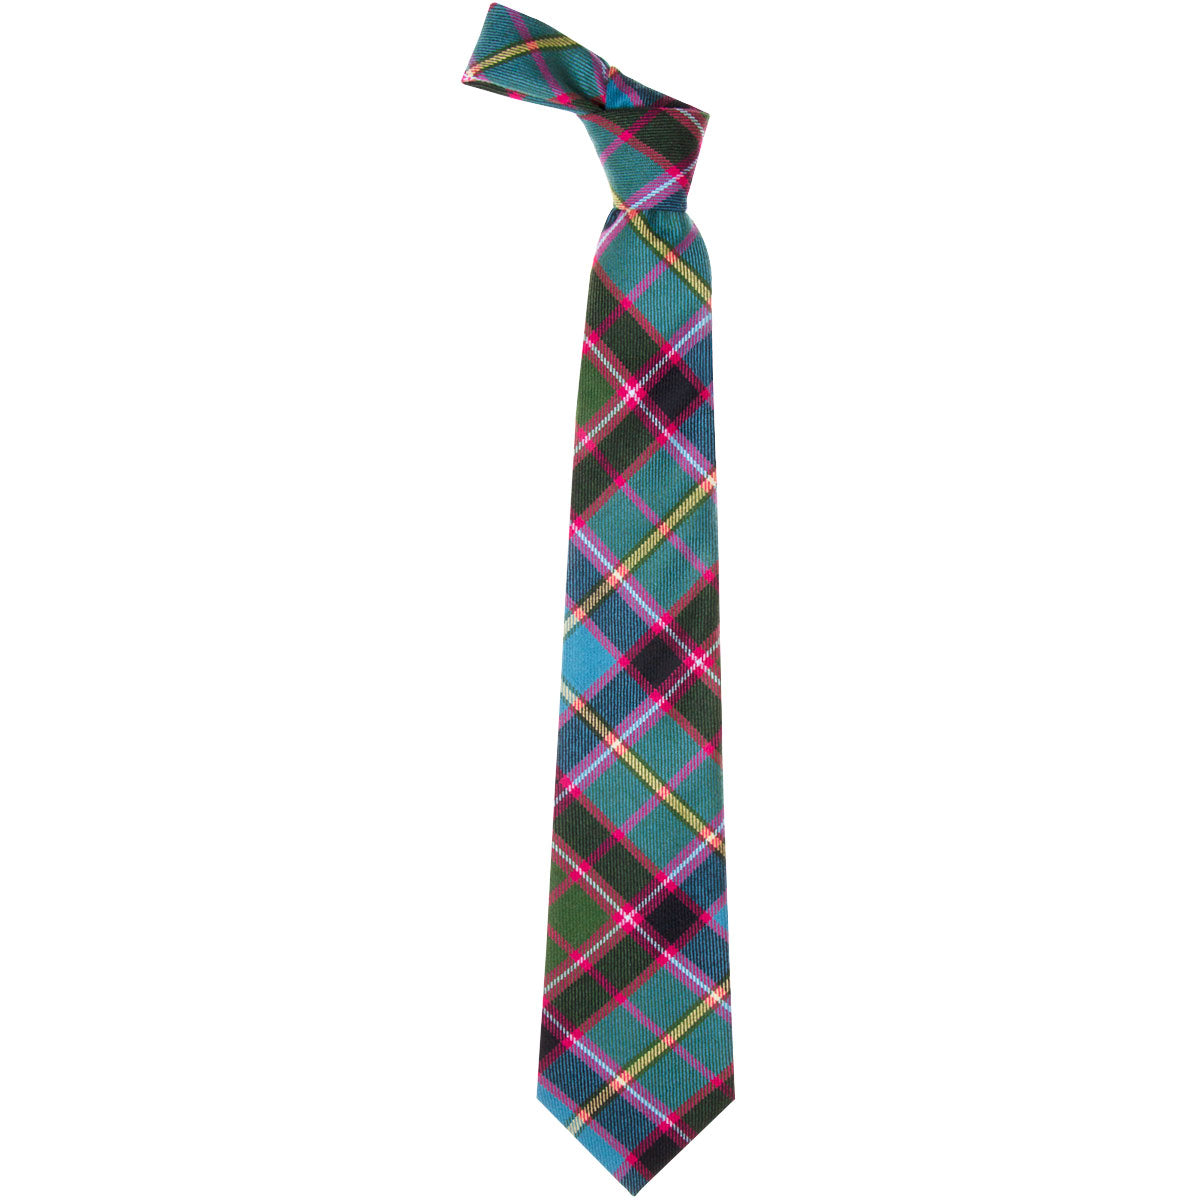 Stirling and Bannockburn Tartan Tie